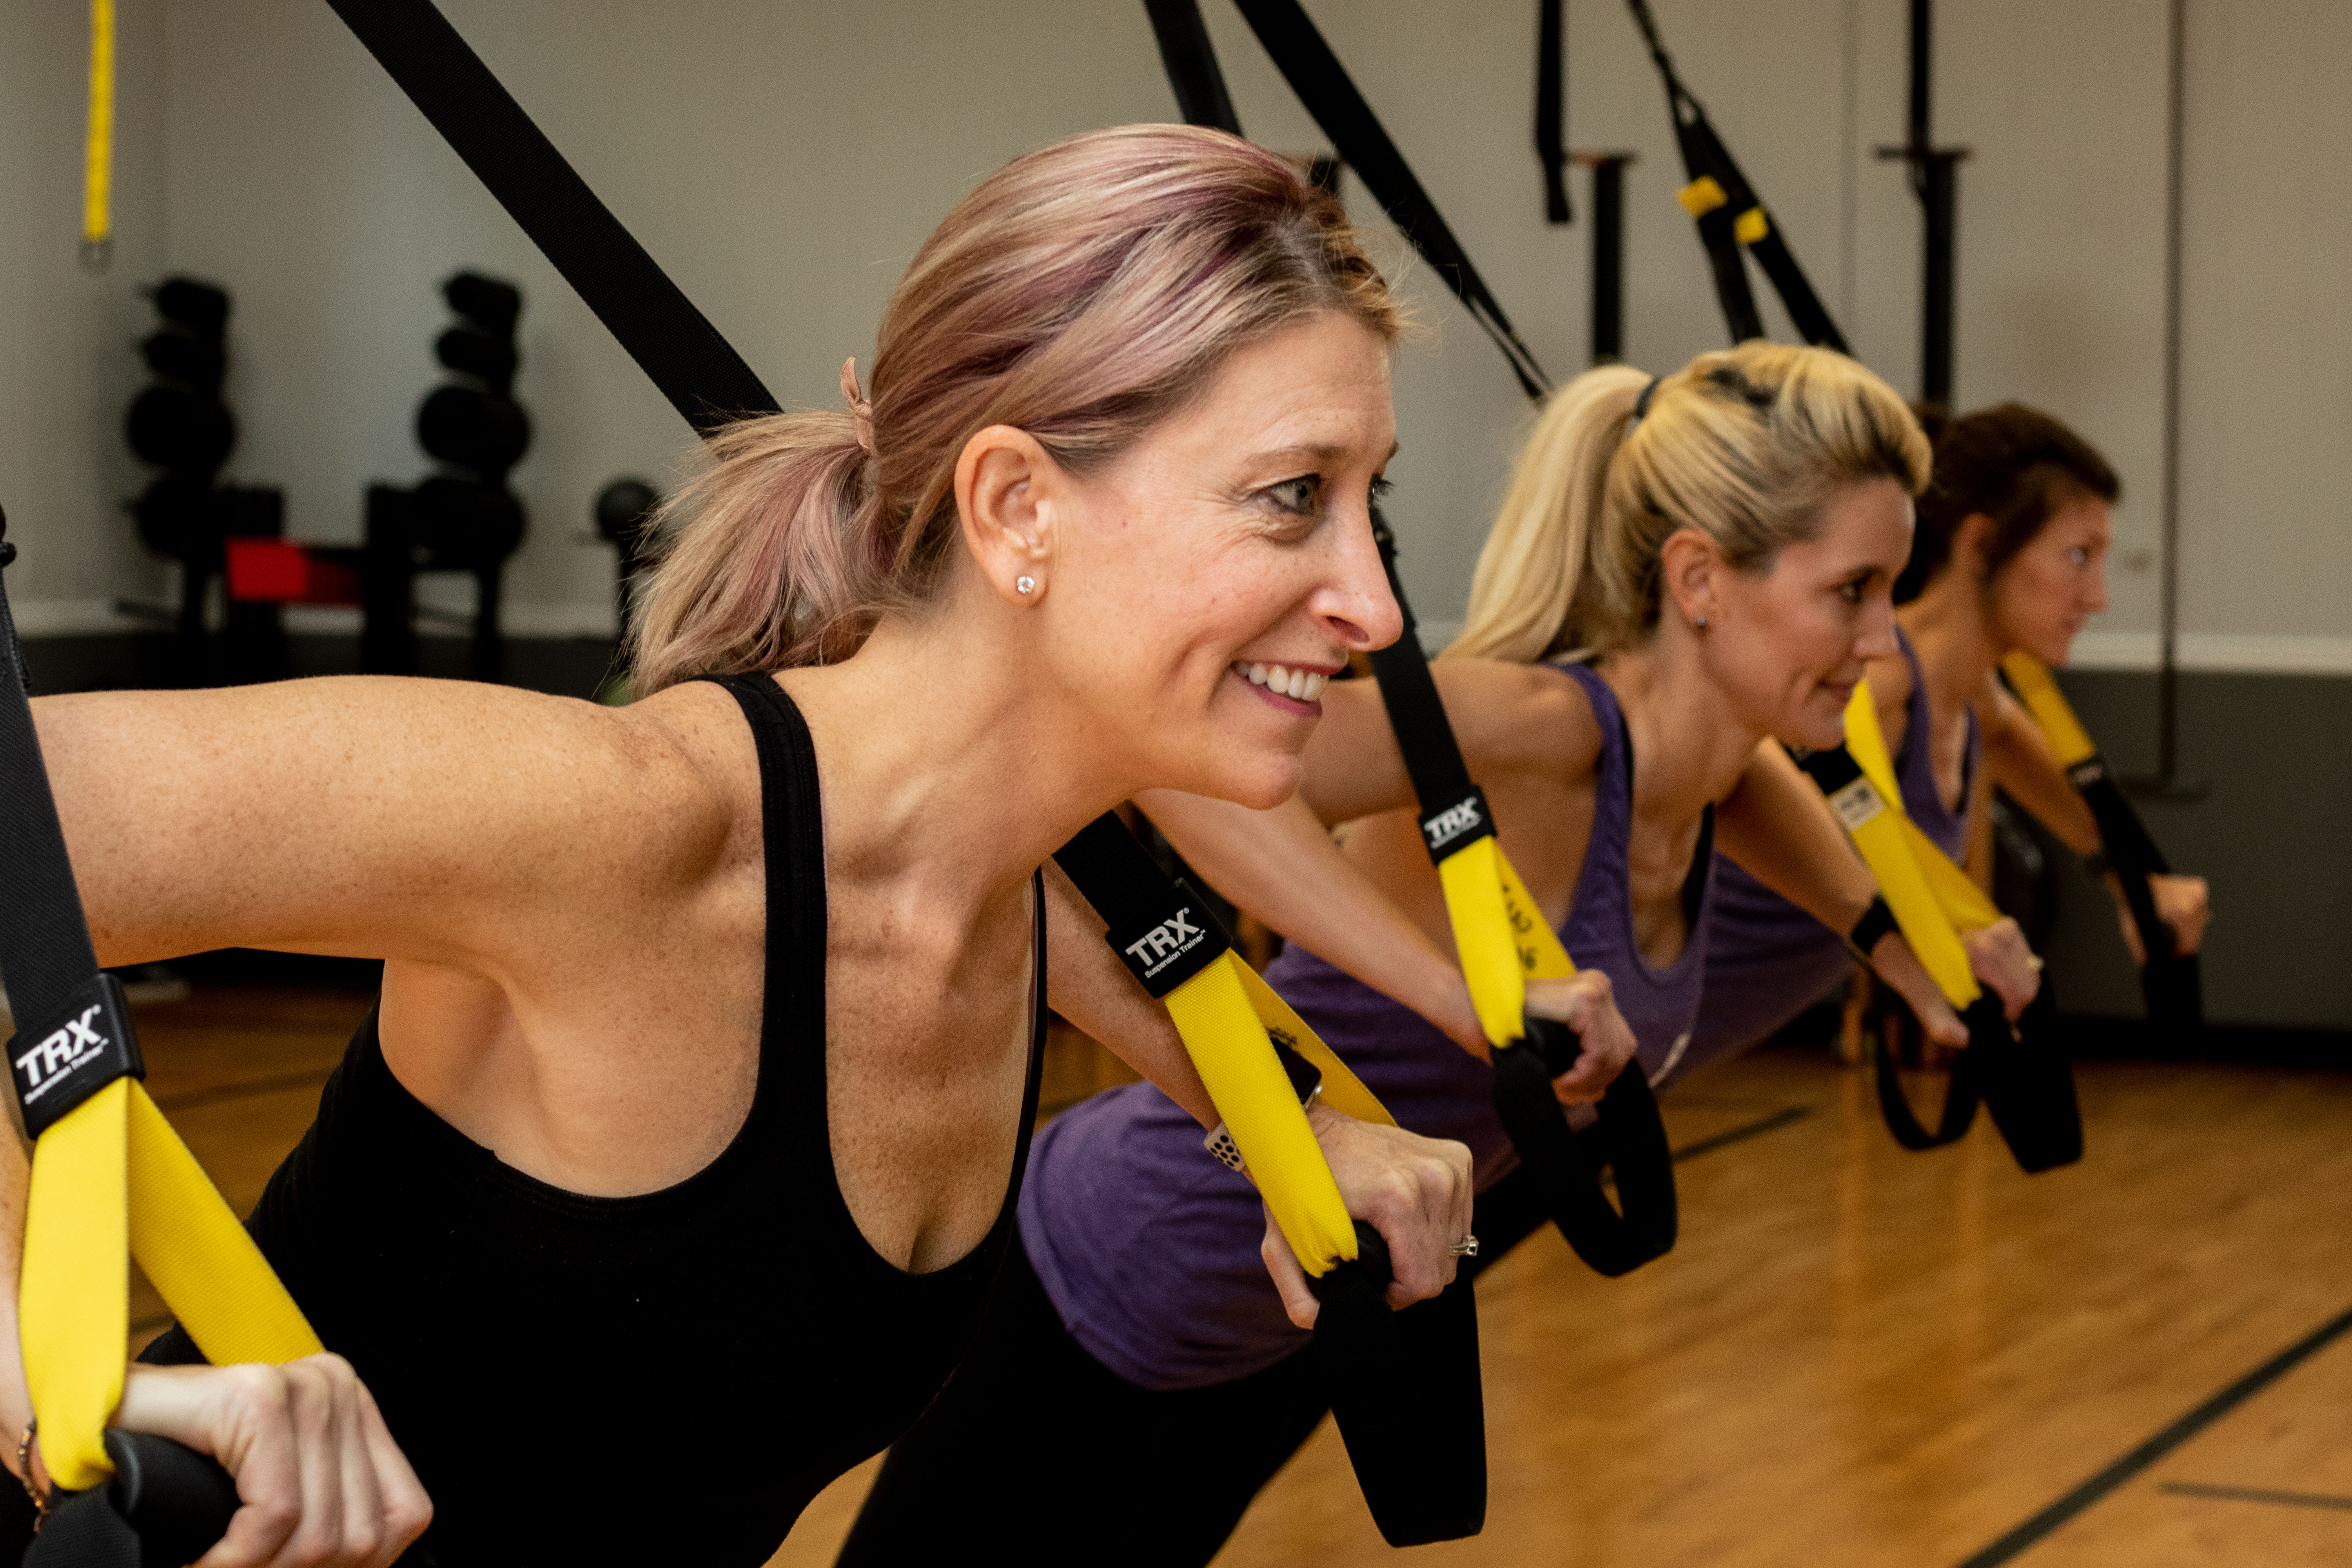 Game On Fitness TRX